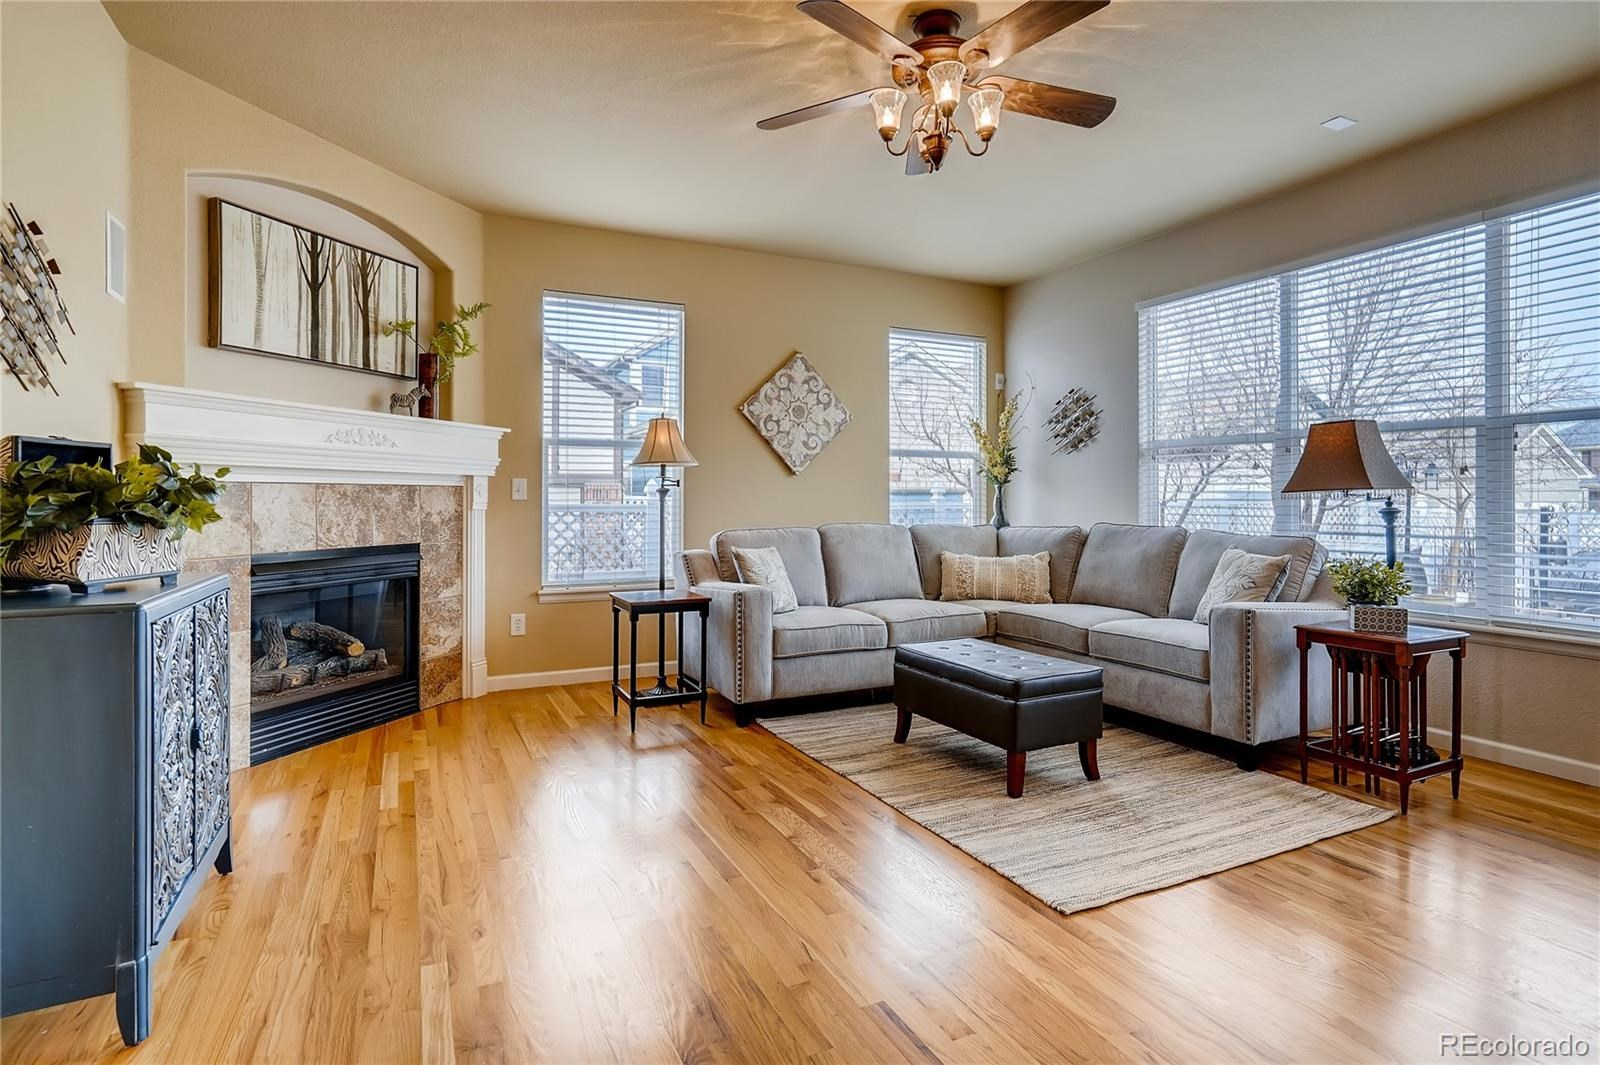 MLS# 8020804 - 2 - 8642 Five Parks Drive, Arvada, CO 80005